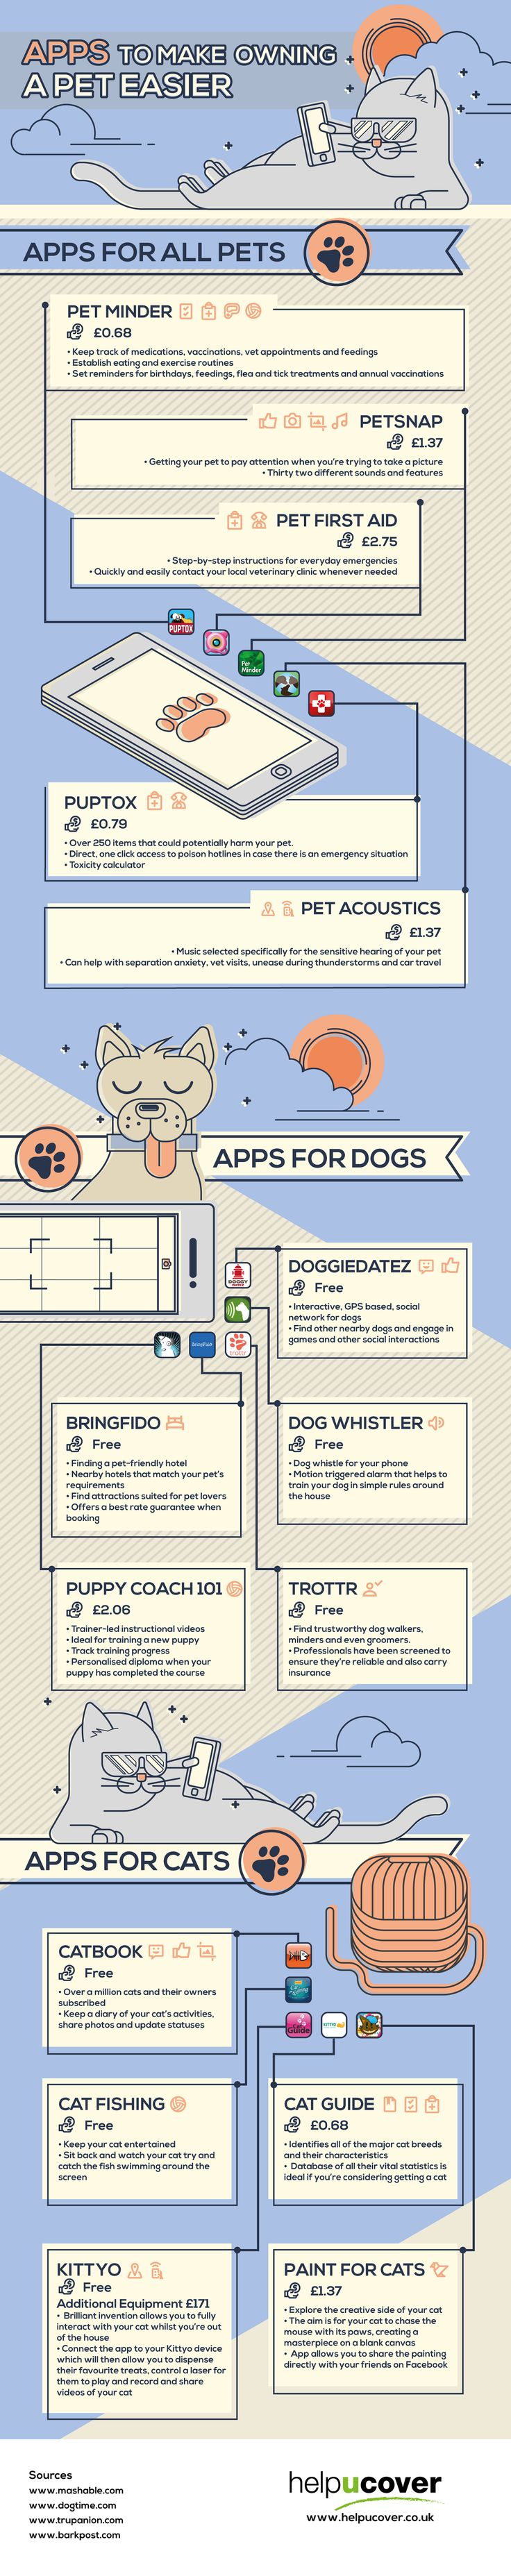 The Best Apps for Pet Owners #Infographic #Apps #Pets